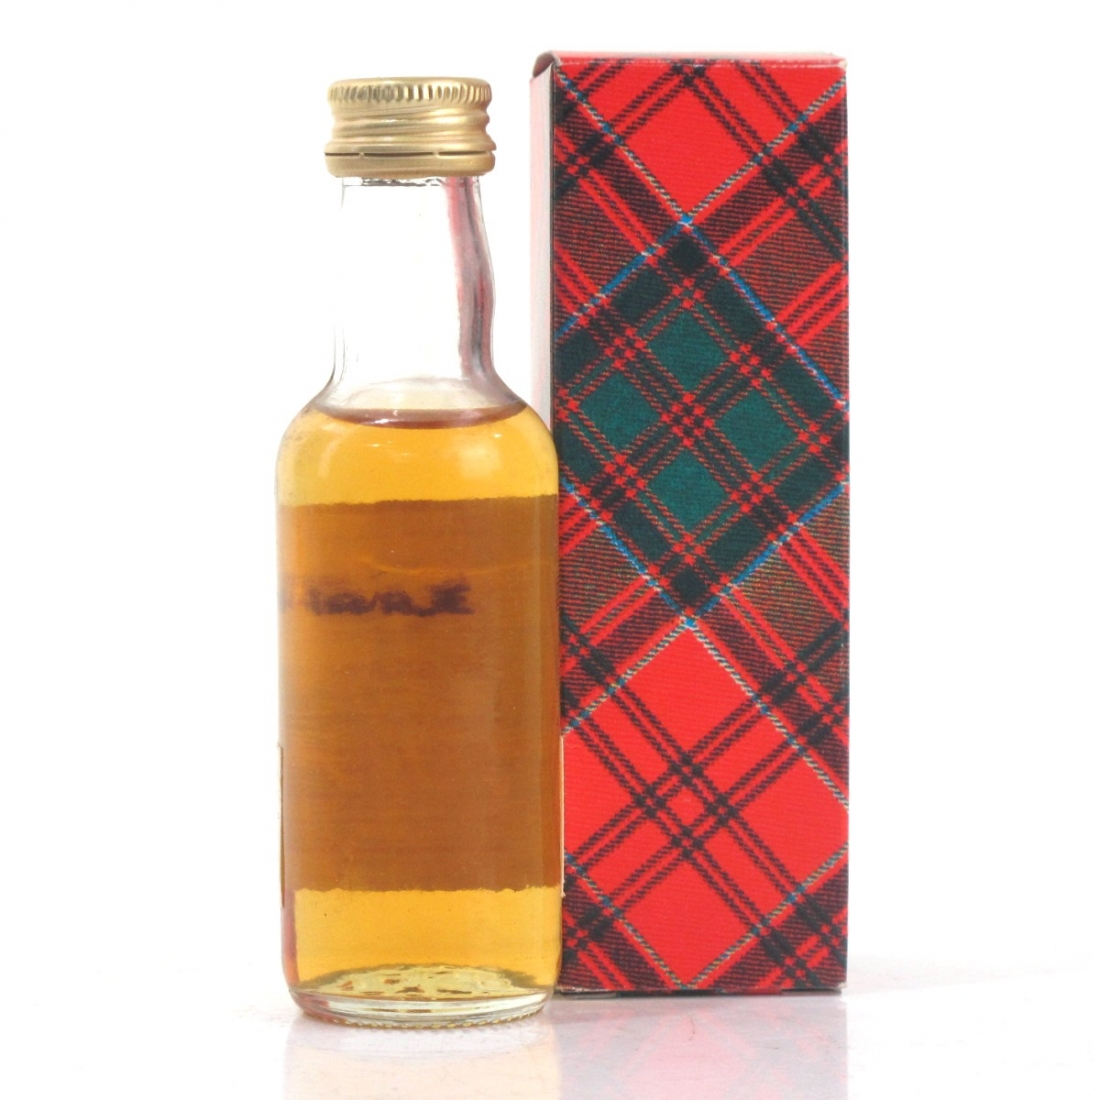 Cragganmore 1976 Gordon and MacPhail Cask Strength Miniature 5cl